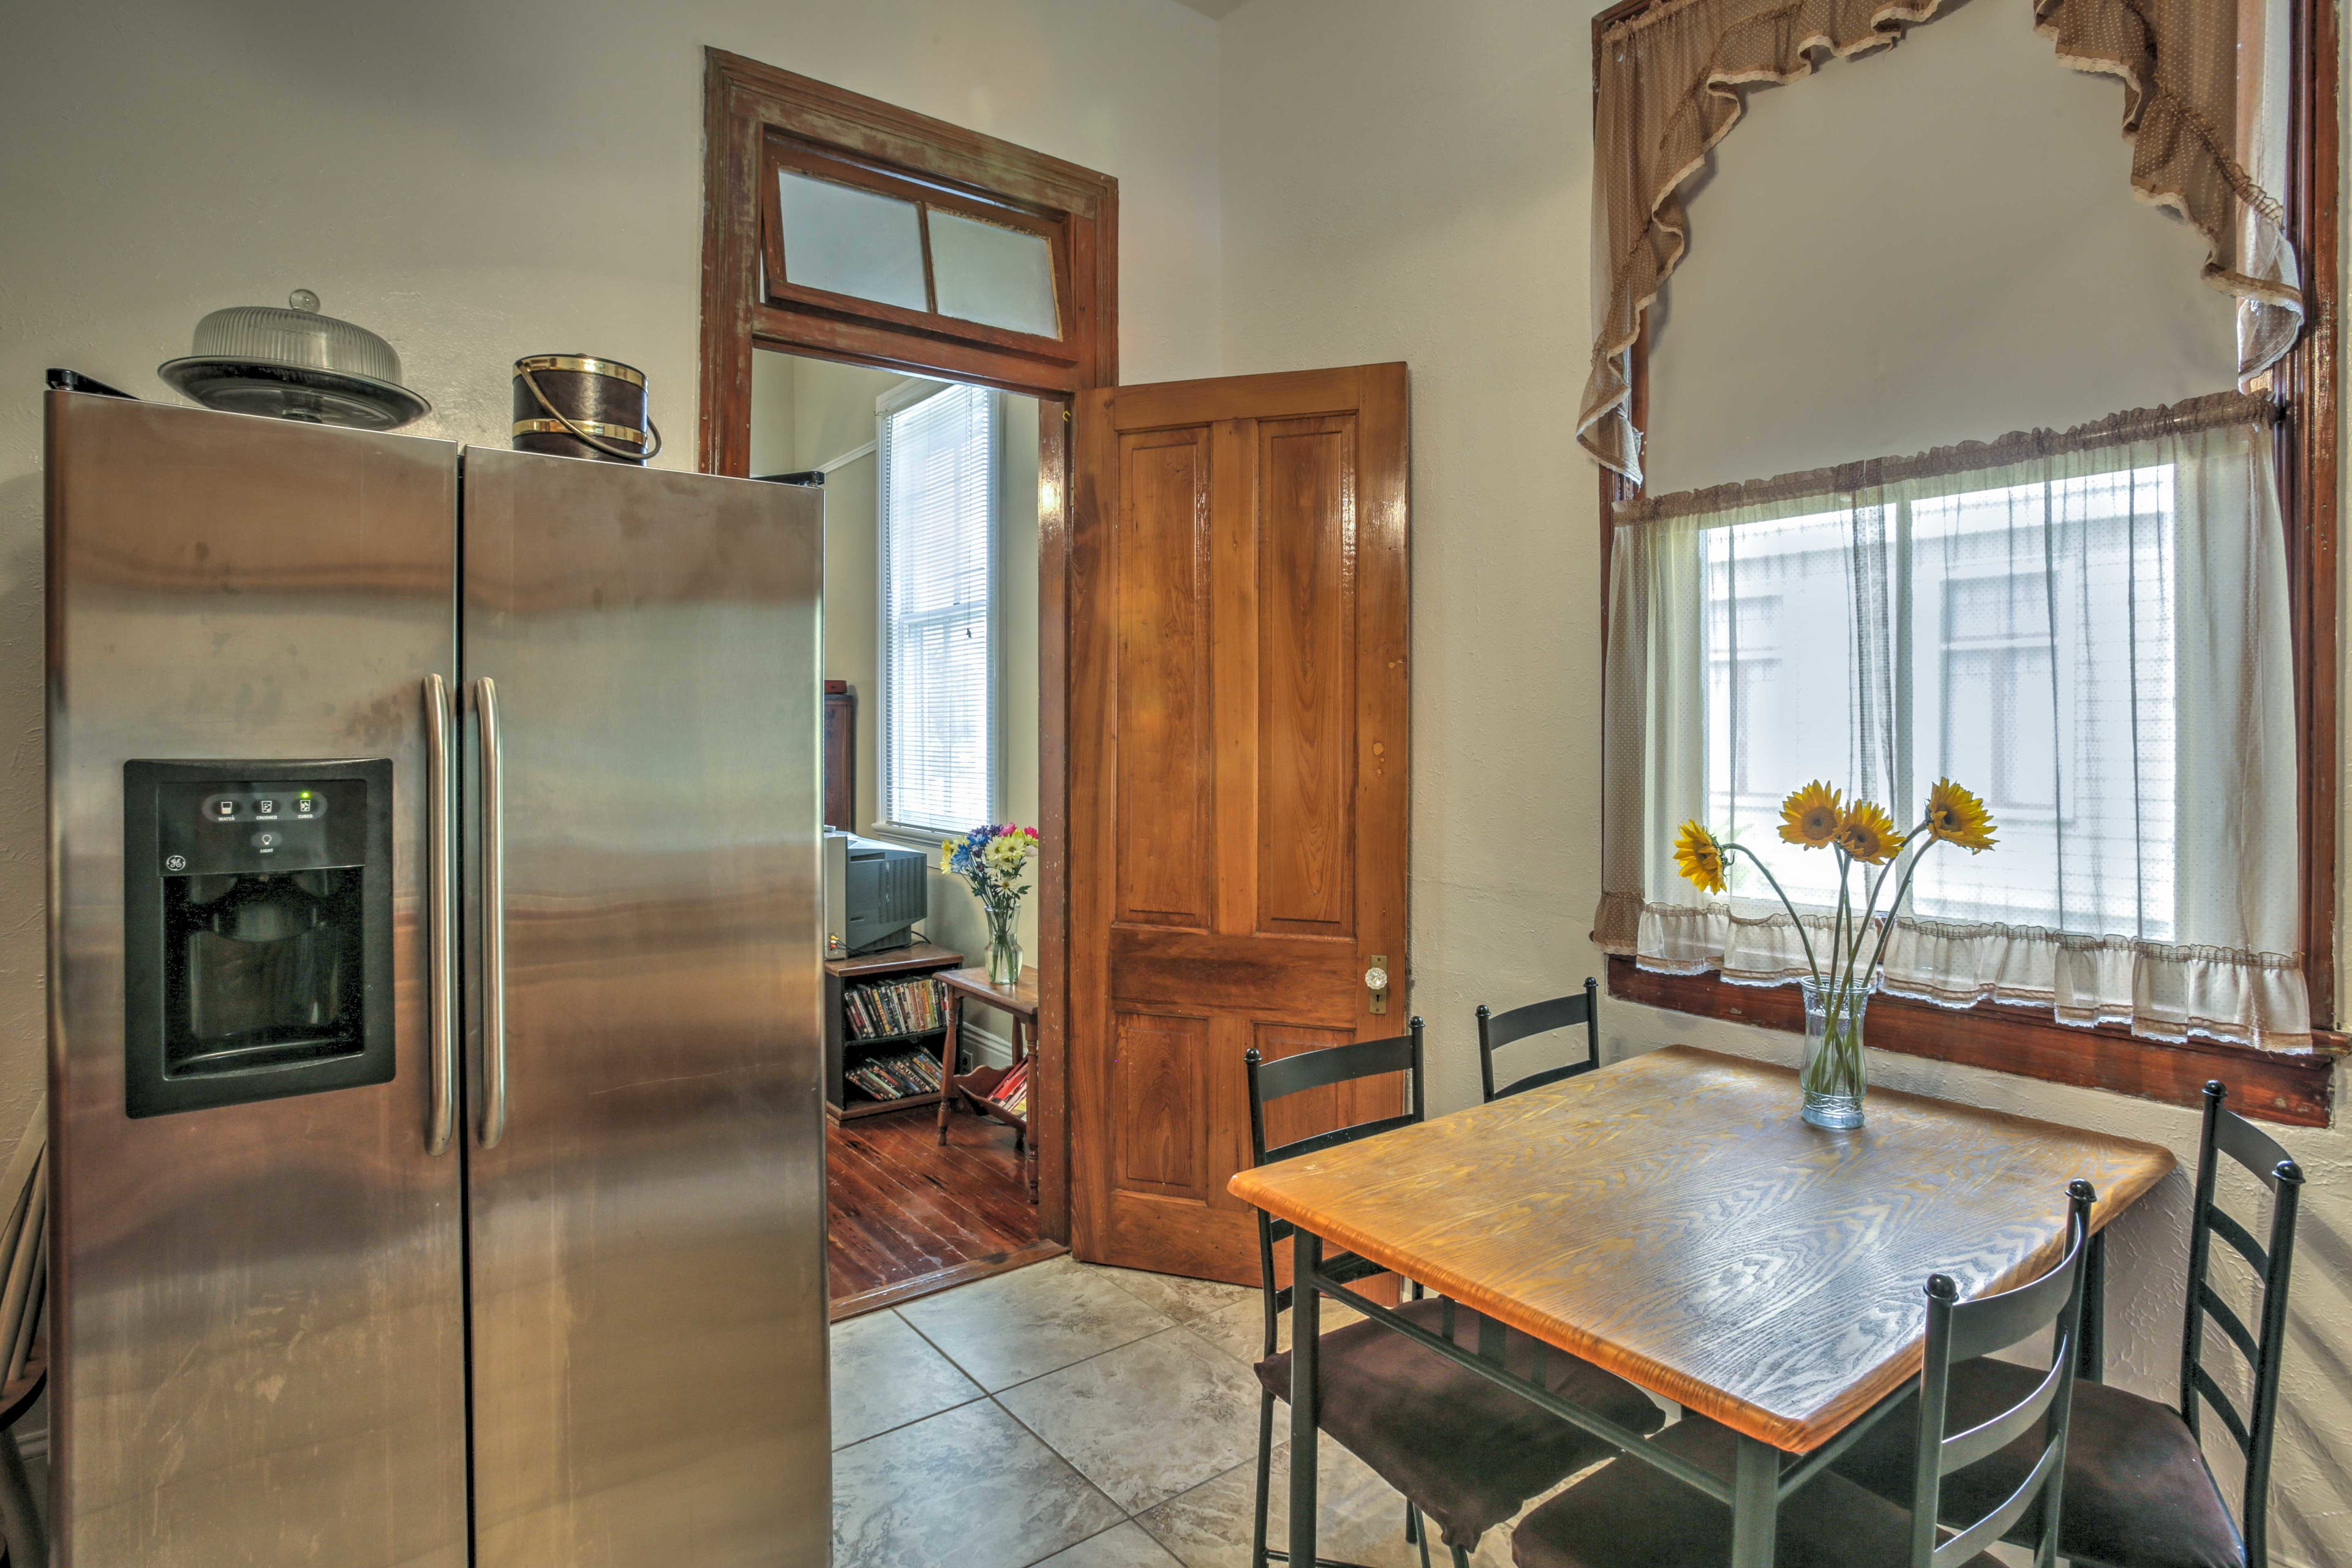 Four guests can eat together at the dining table in the kitchen.